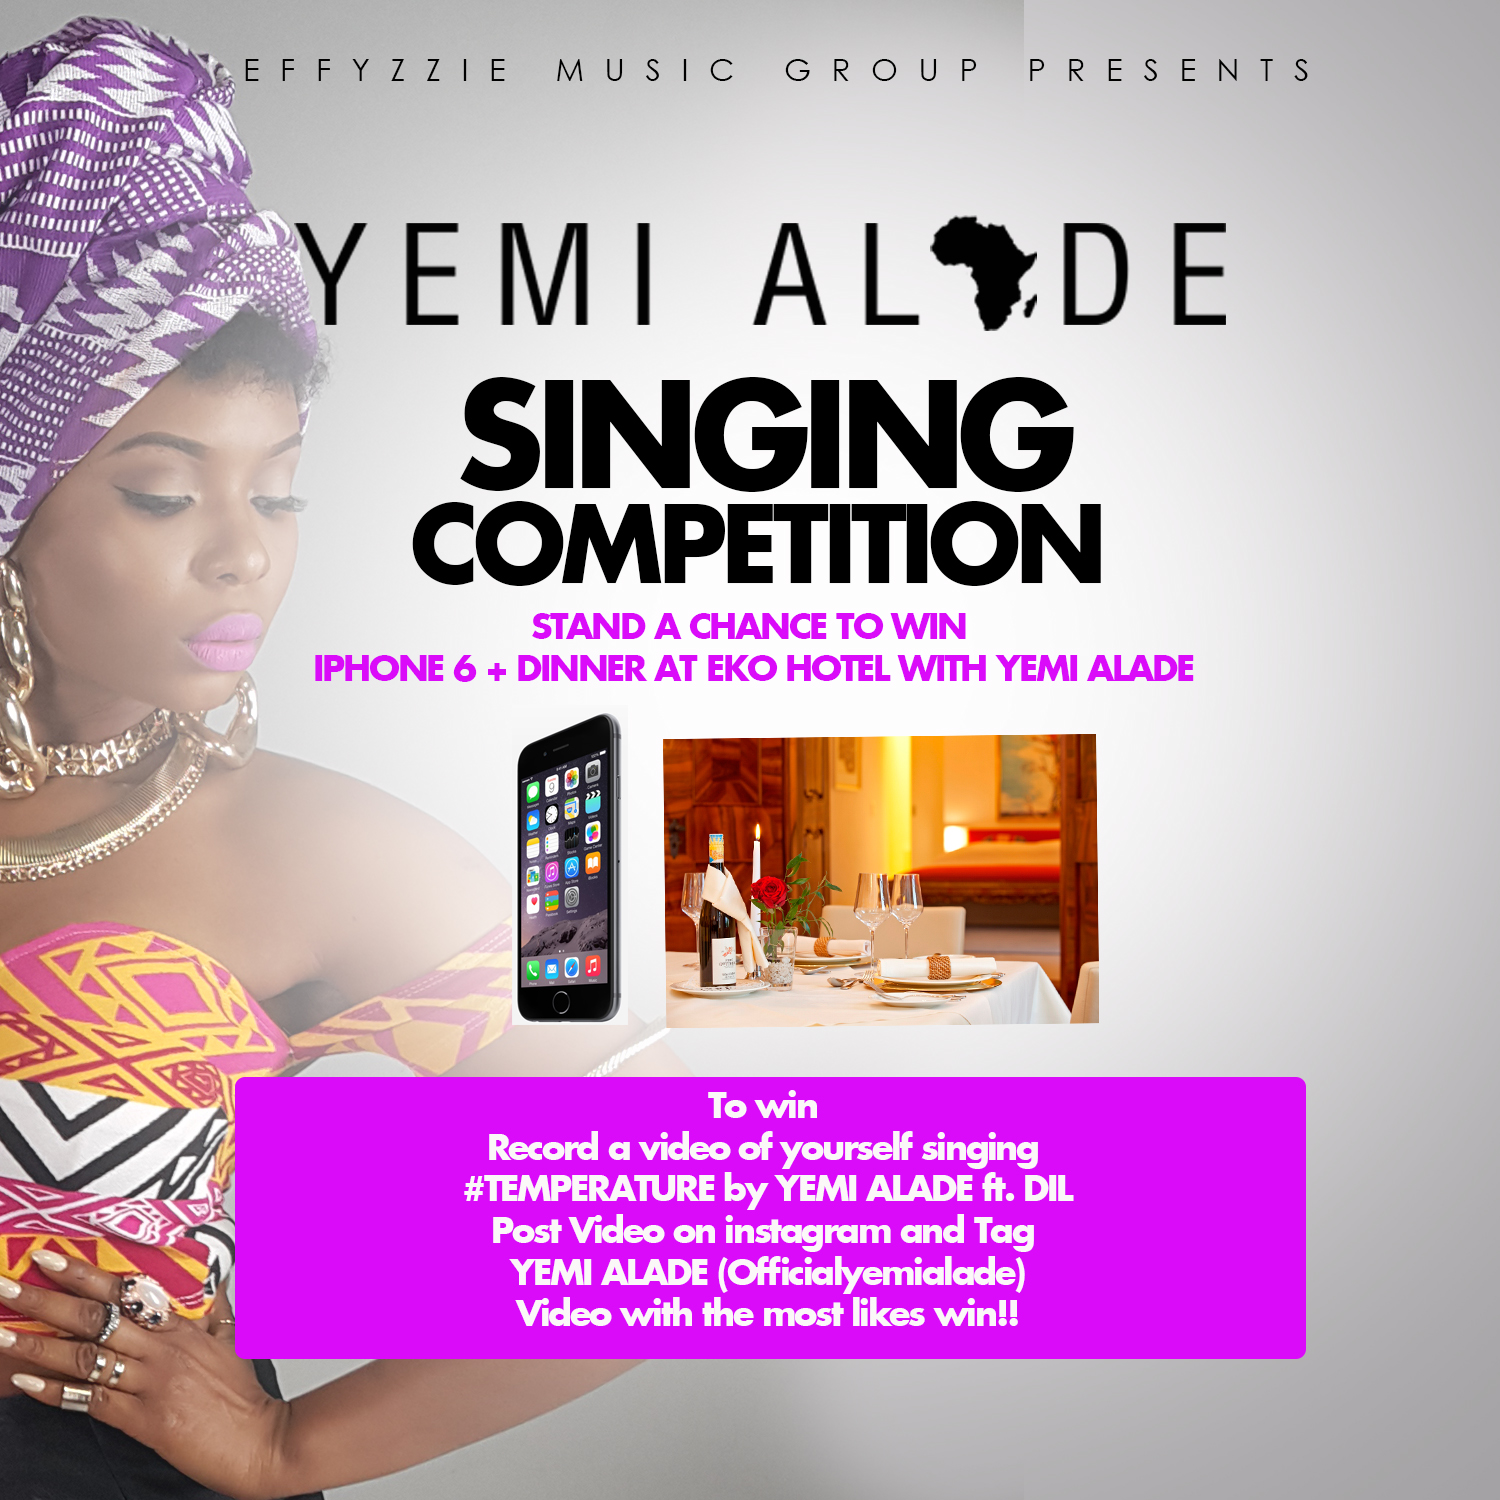 Yemi Alade #TemperatureSingingContest